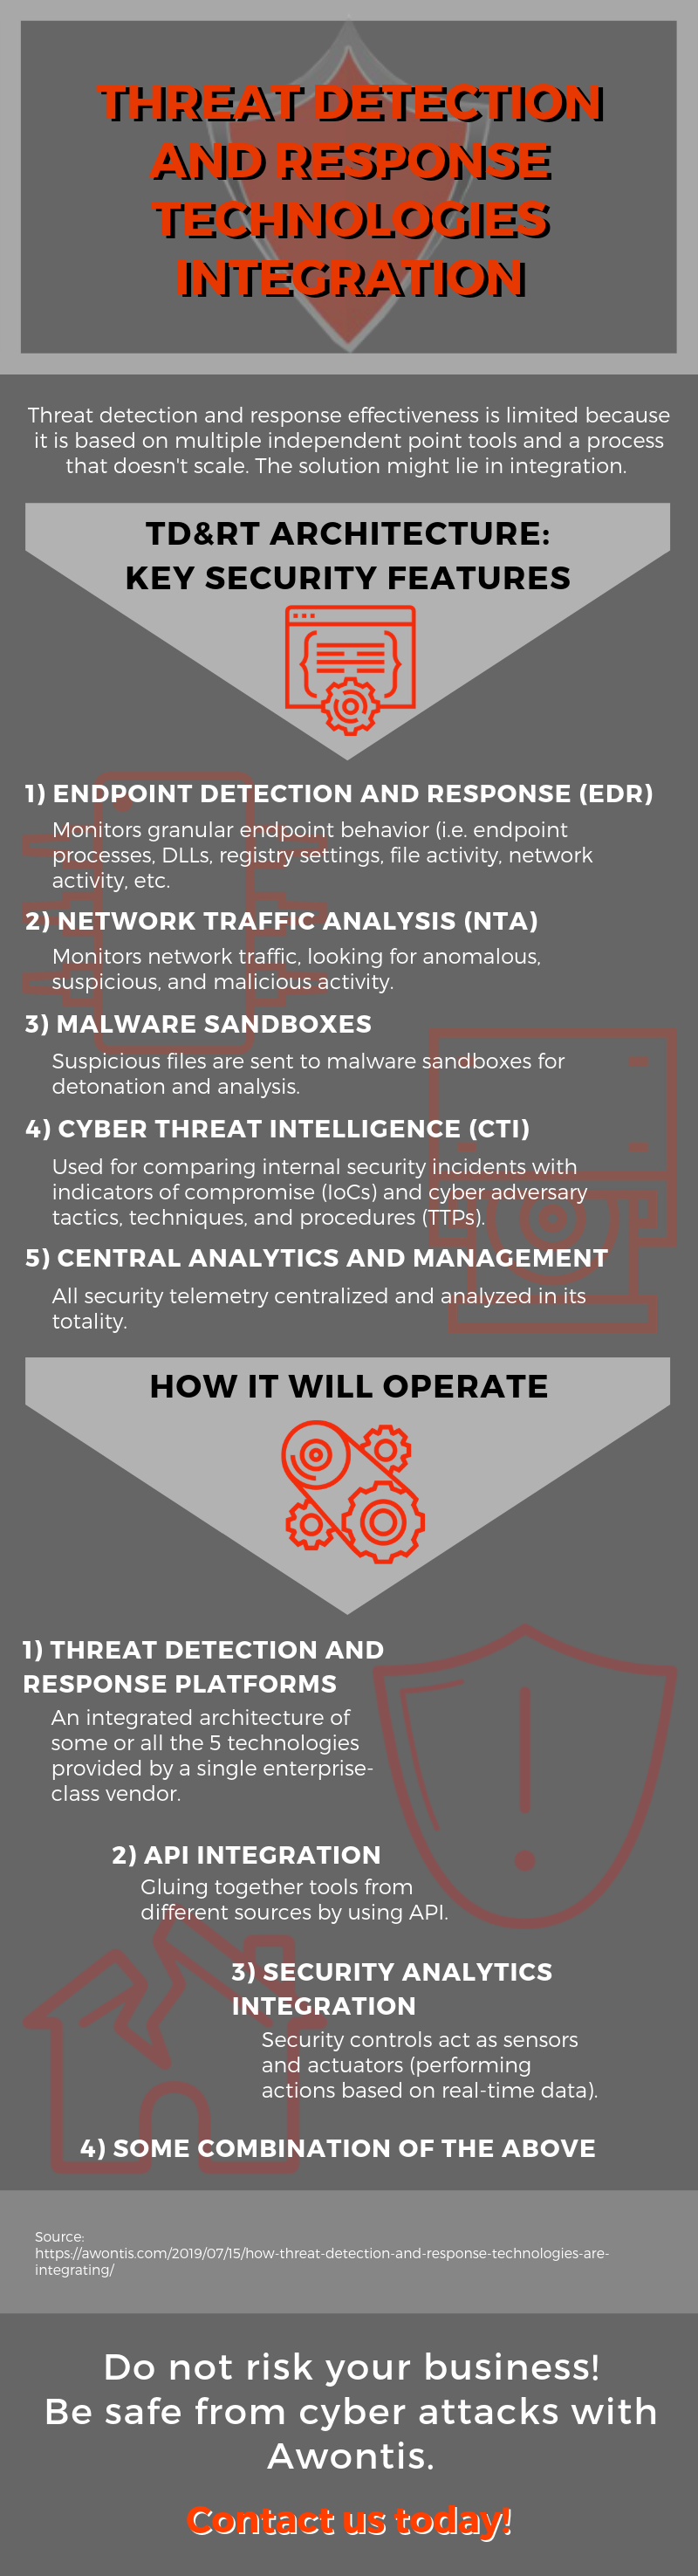 Threat Detection and Response Technologies Integration Infographic